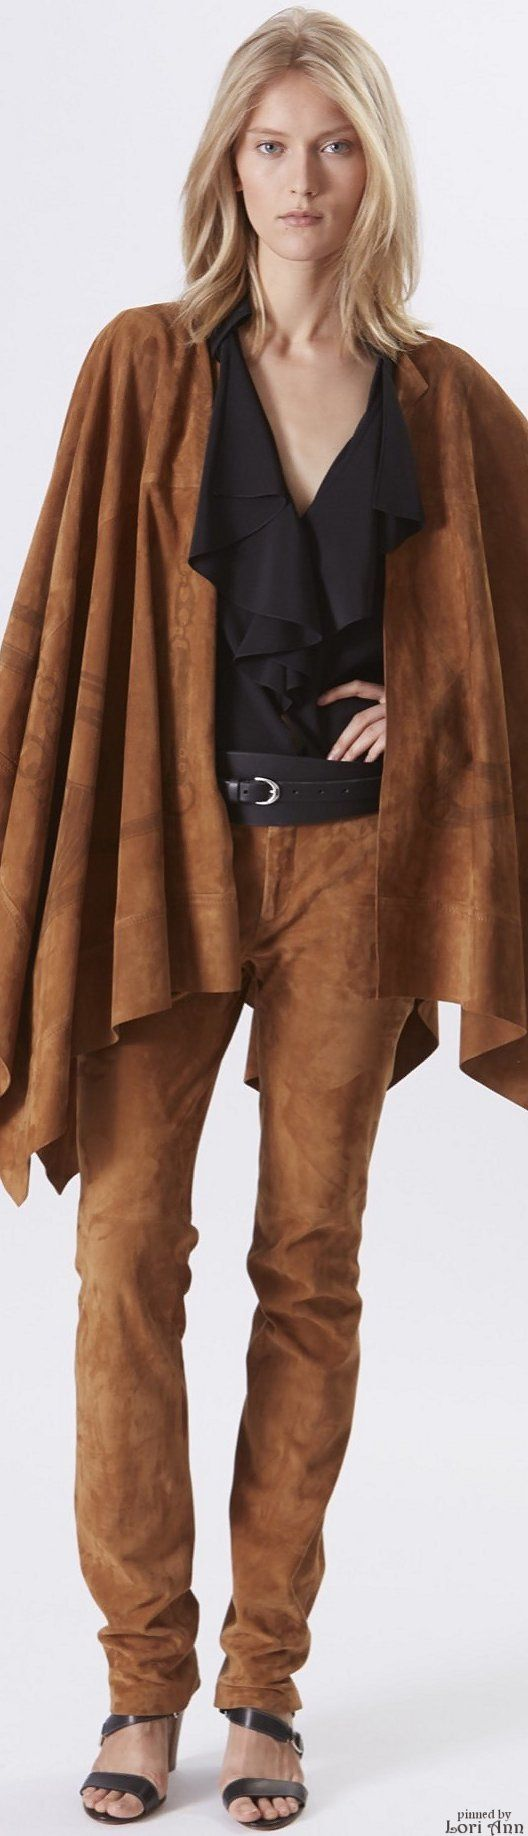 Ralph Lauren Resort 2016 brown women fashion outfit clothing stylish apparel @roressclothes closet ideas